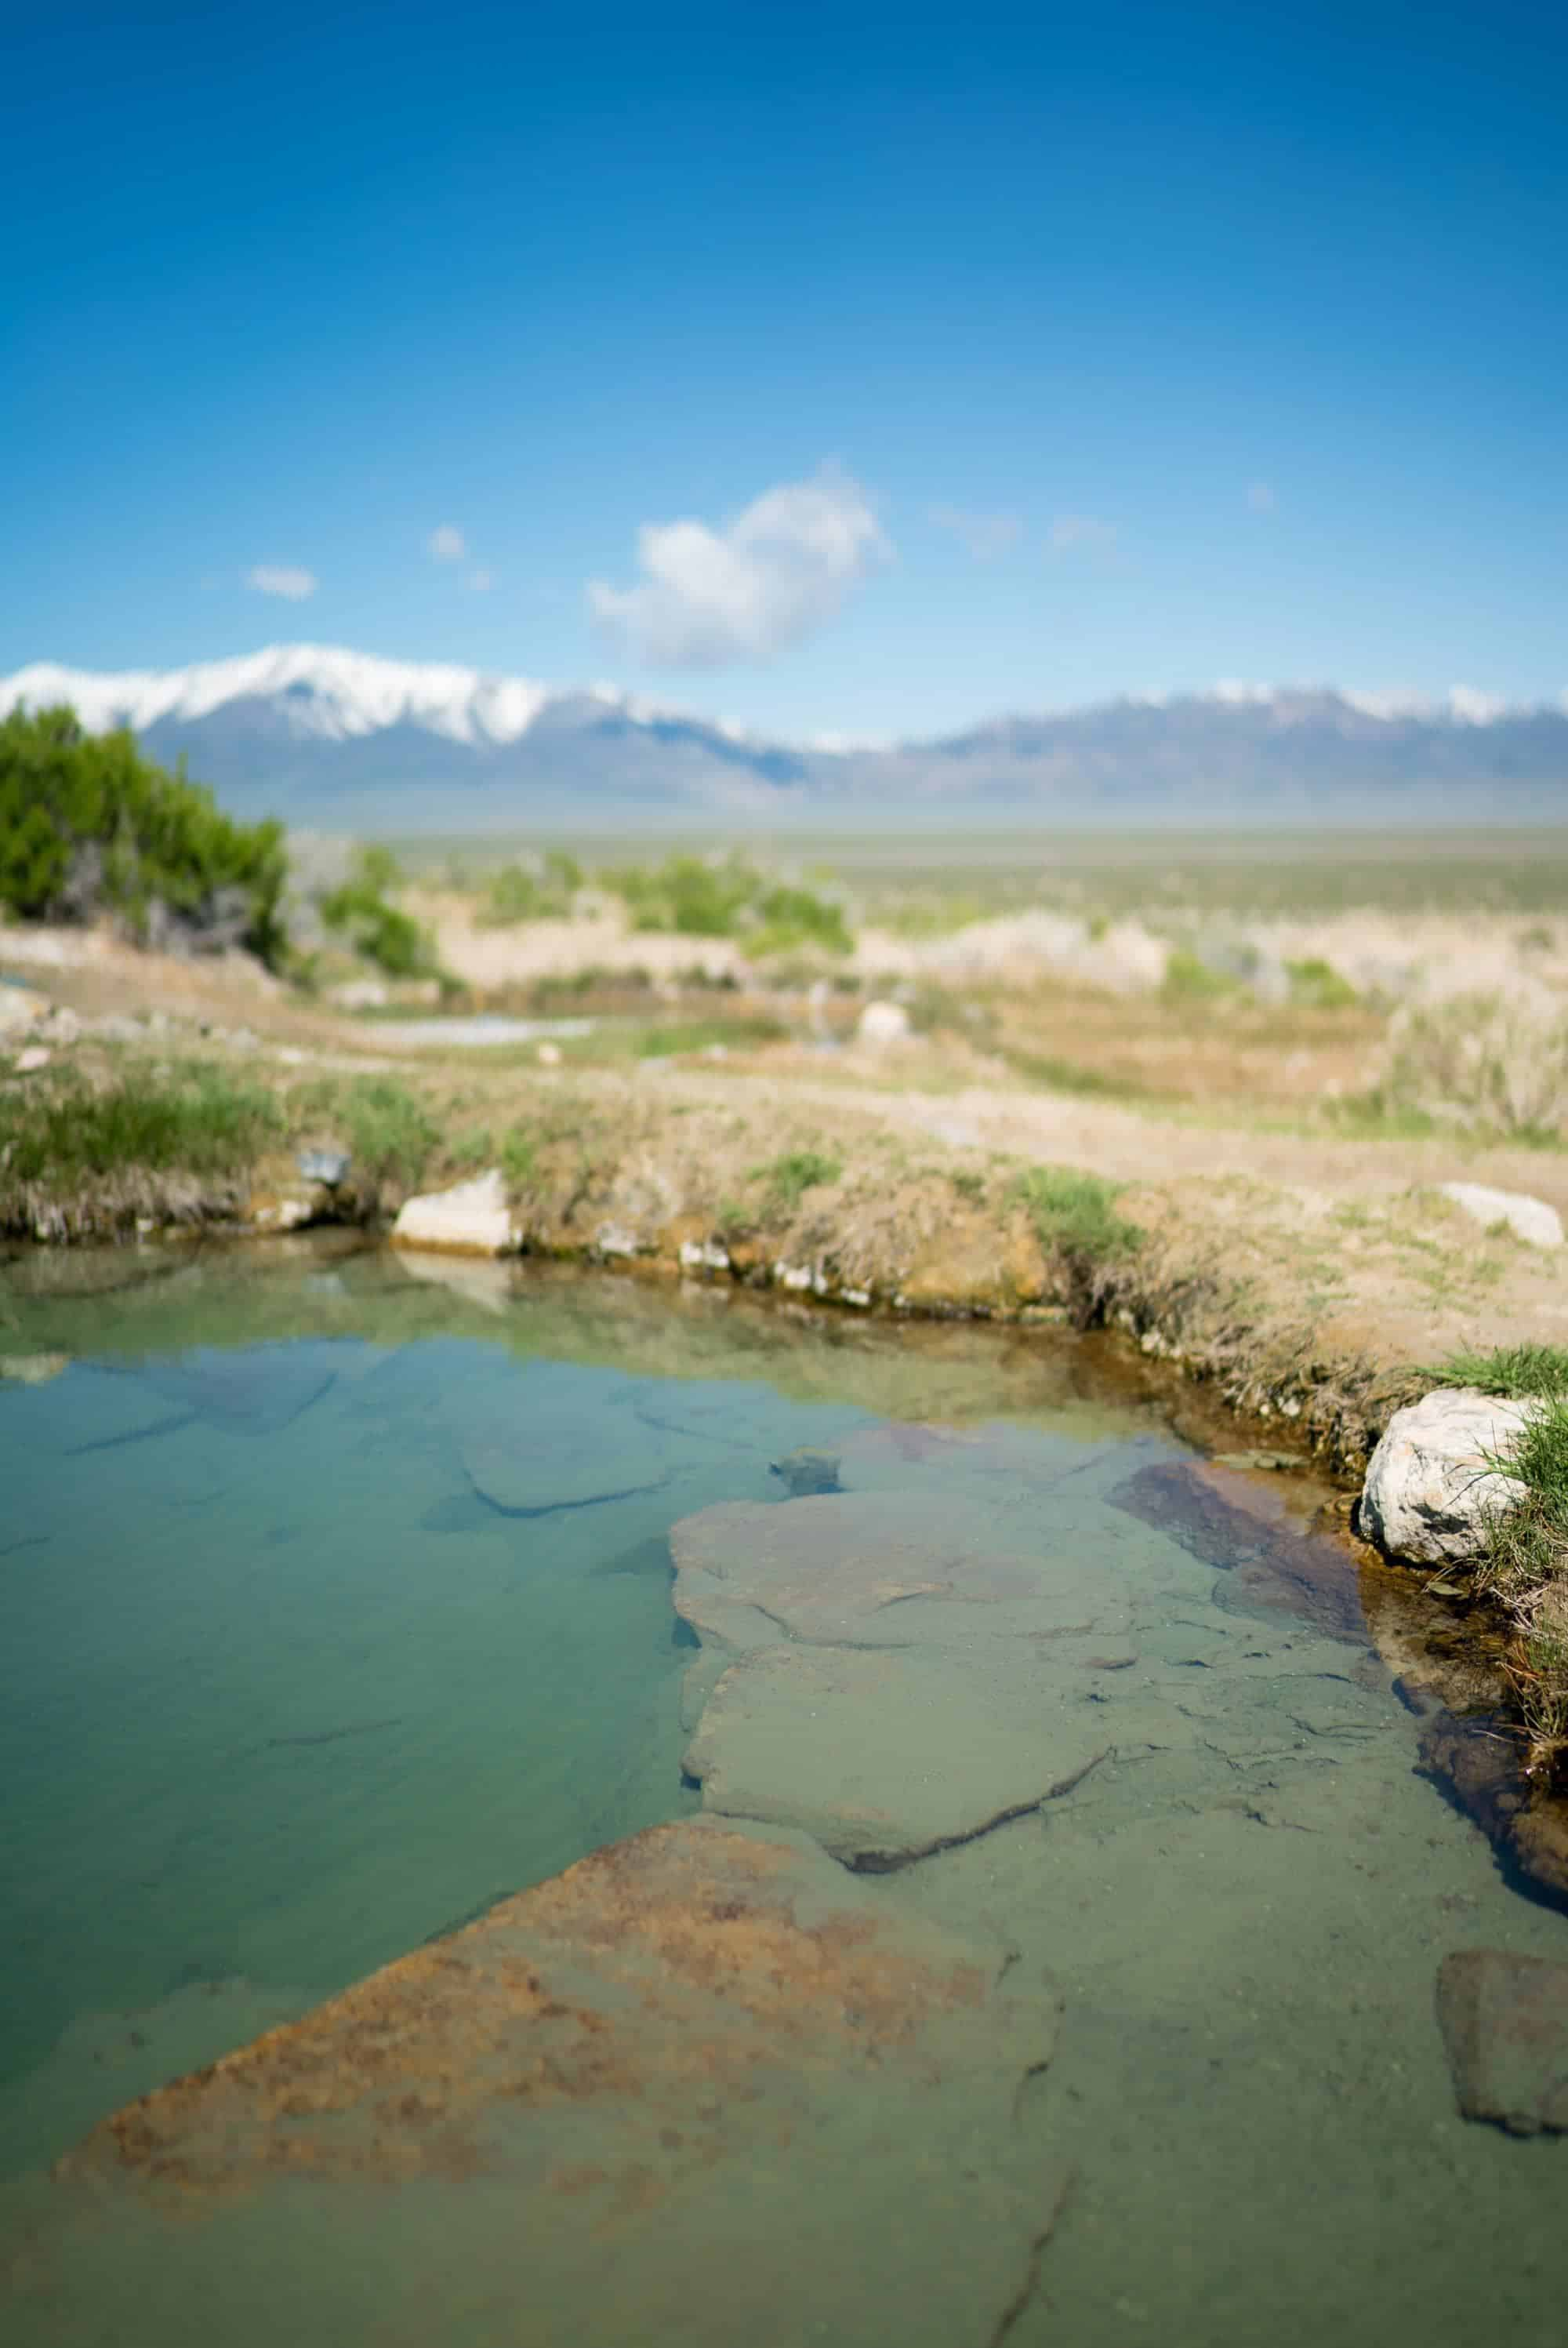 Spencer Hot Springs // Visit 12 of the best Nevada road trip stops, from the top state parks to hot springs, ghost towns & trails where you'll find solitude and amazing landscapes